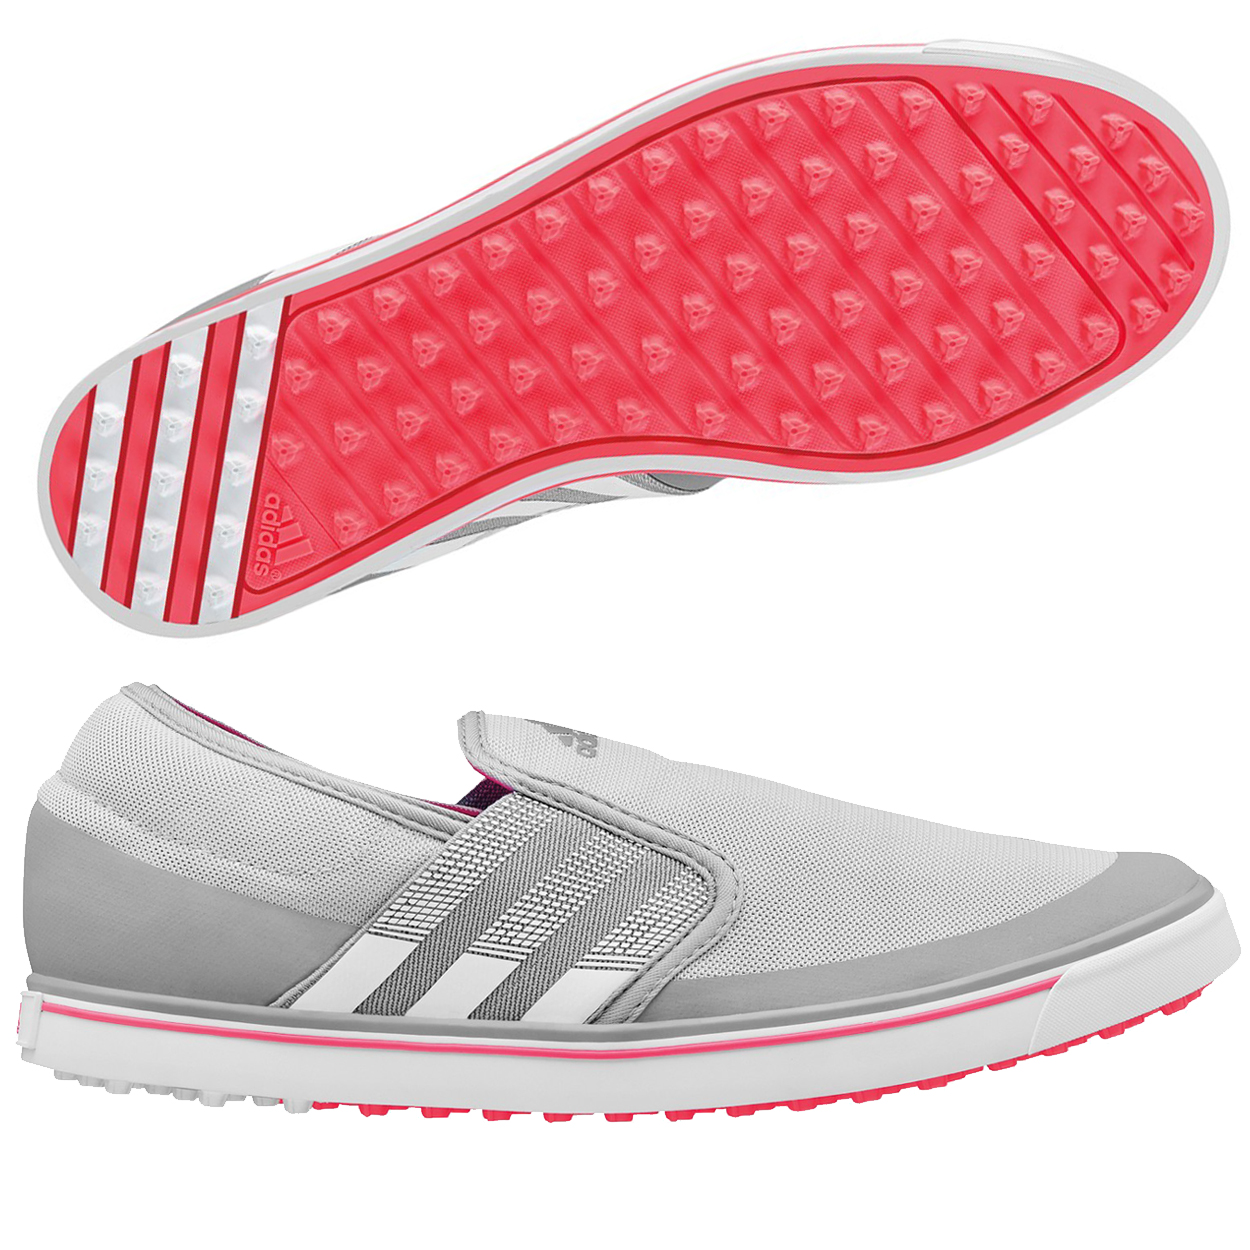 Spikeless Golf Shoes  Best Prices at OnlineGolf